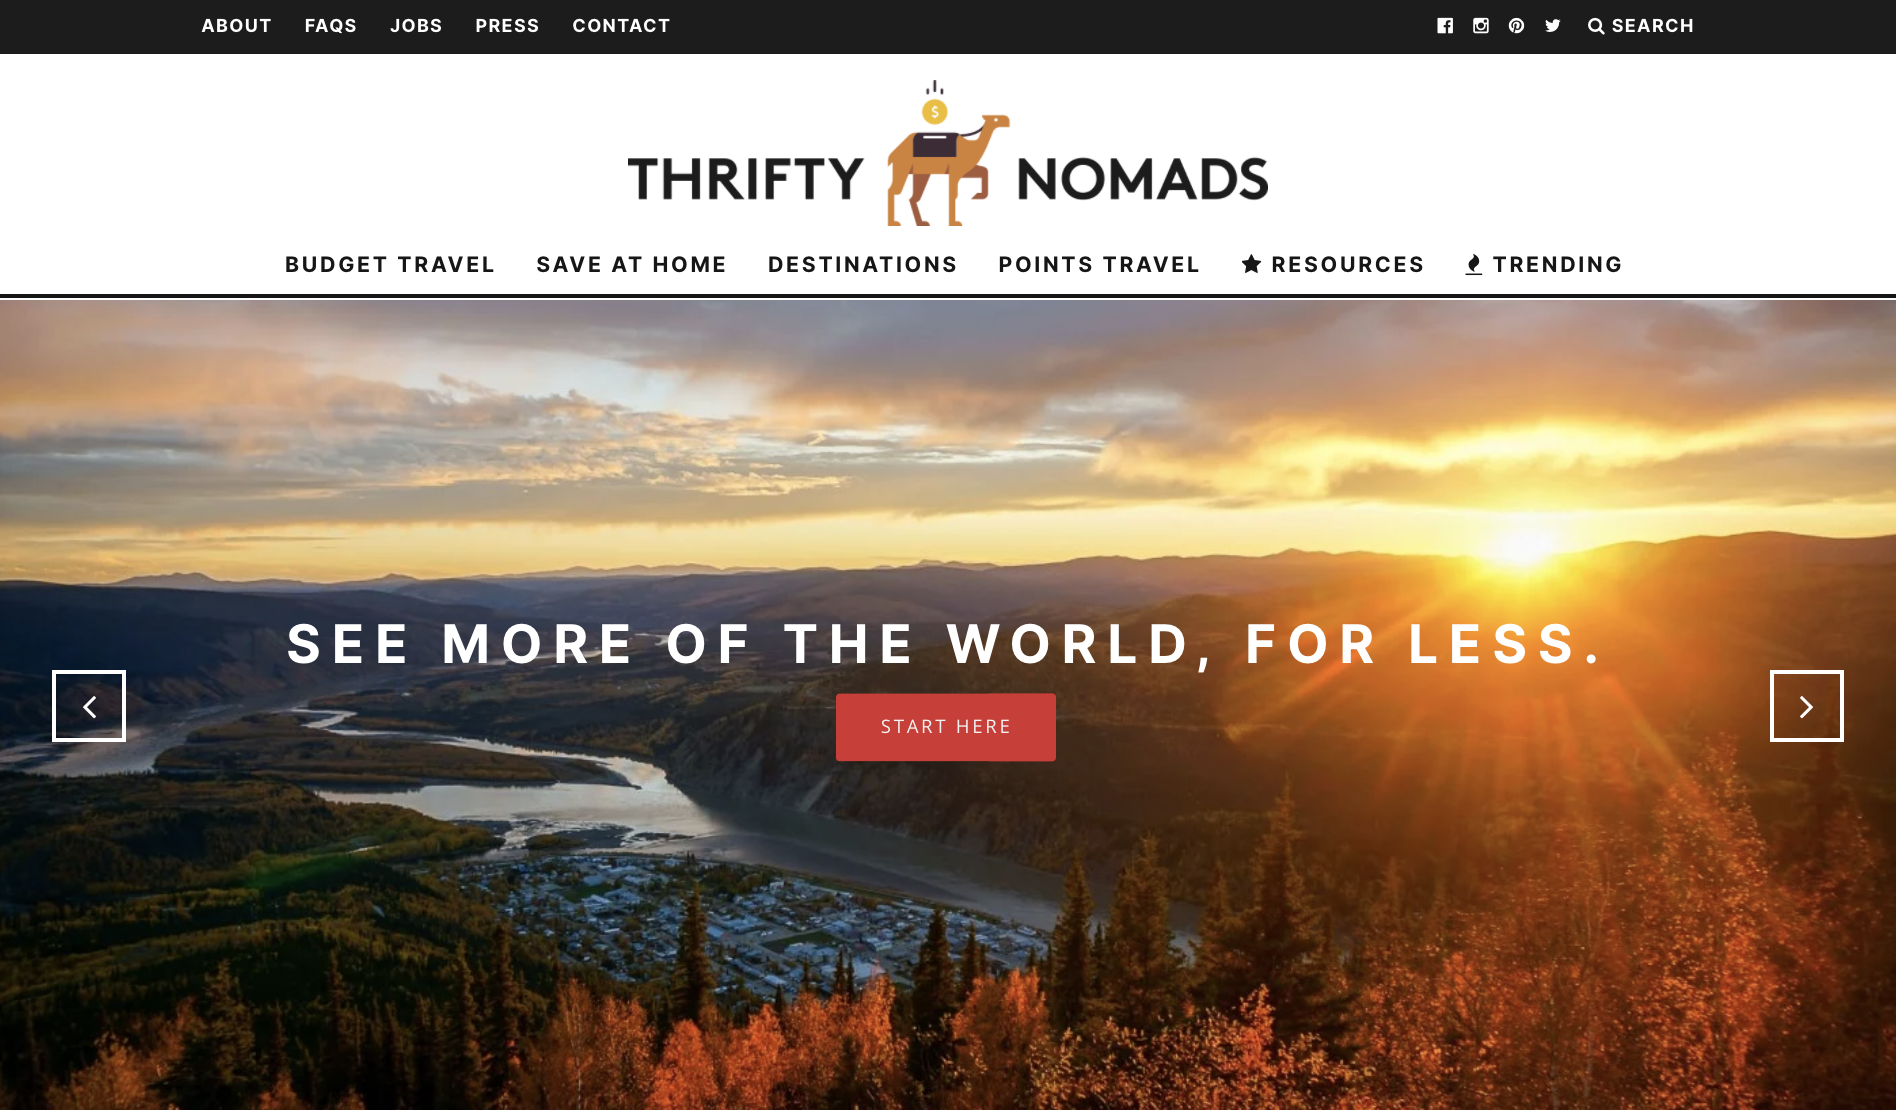 Thrifty Nomads